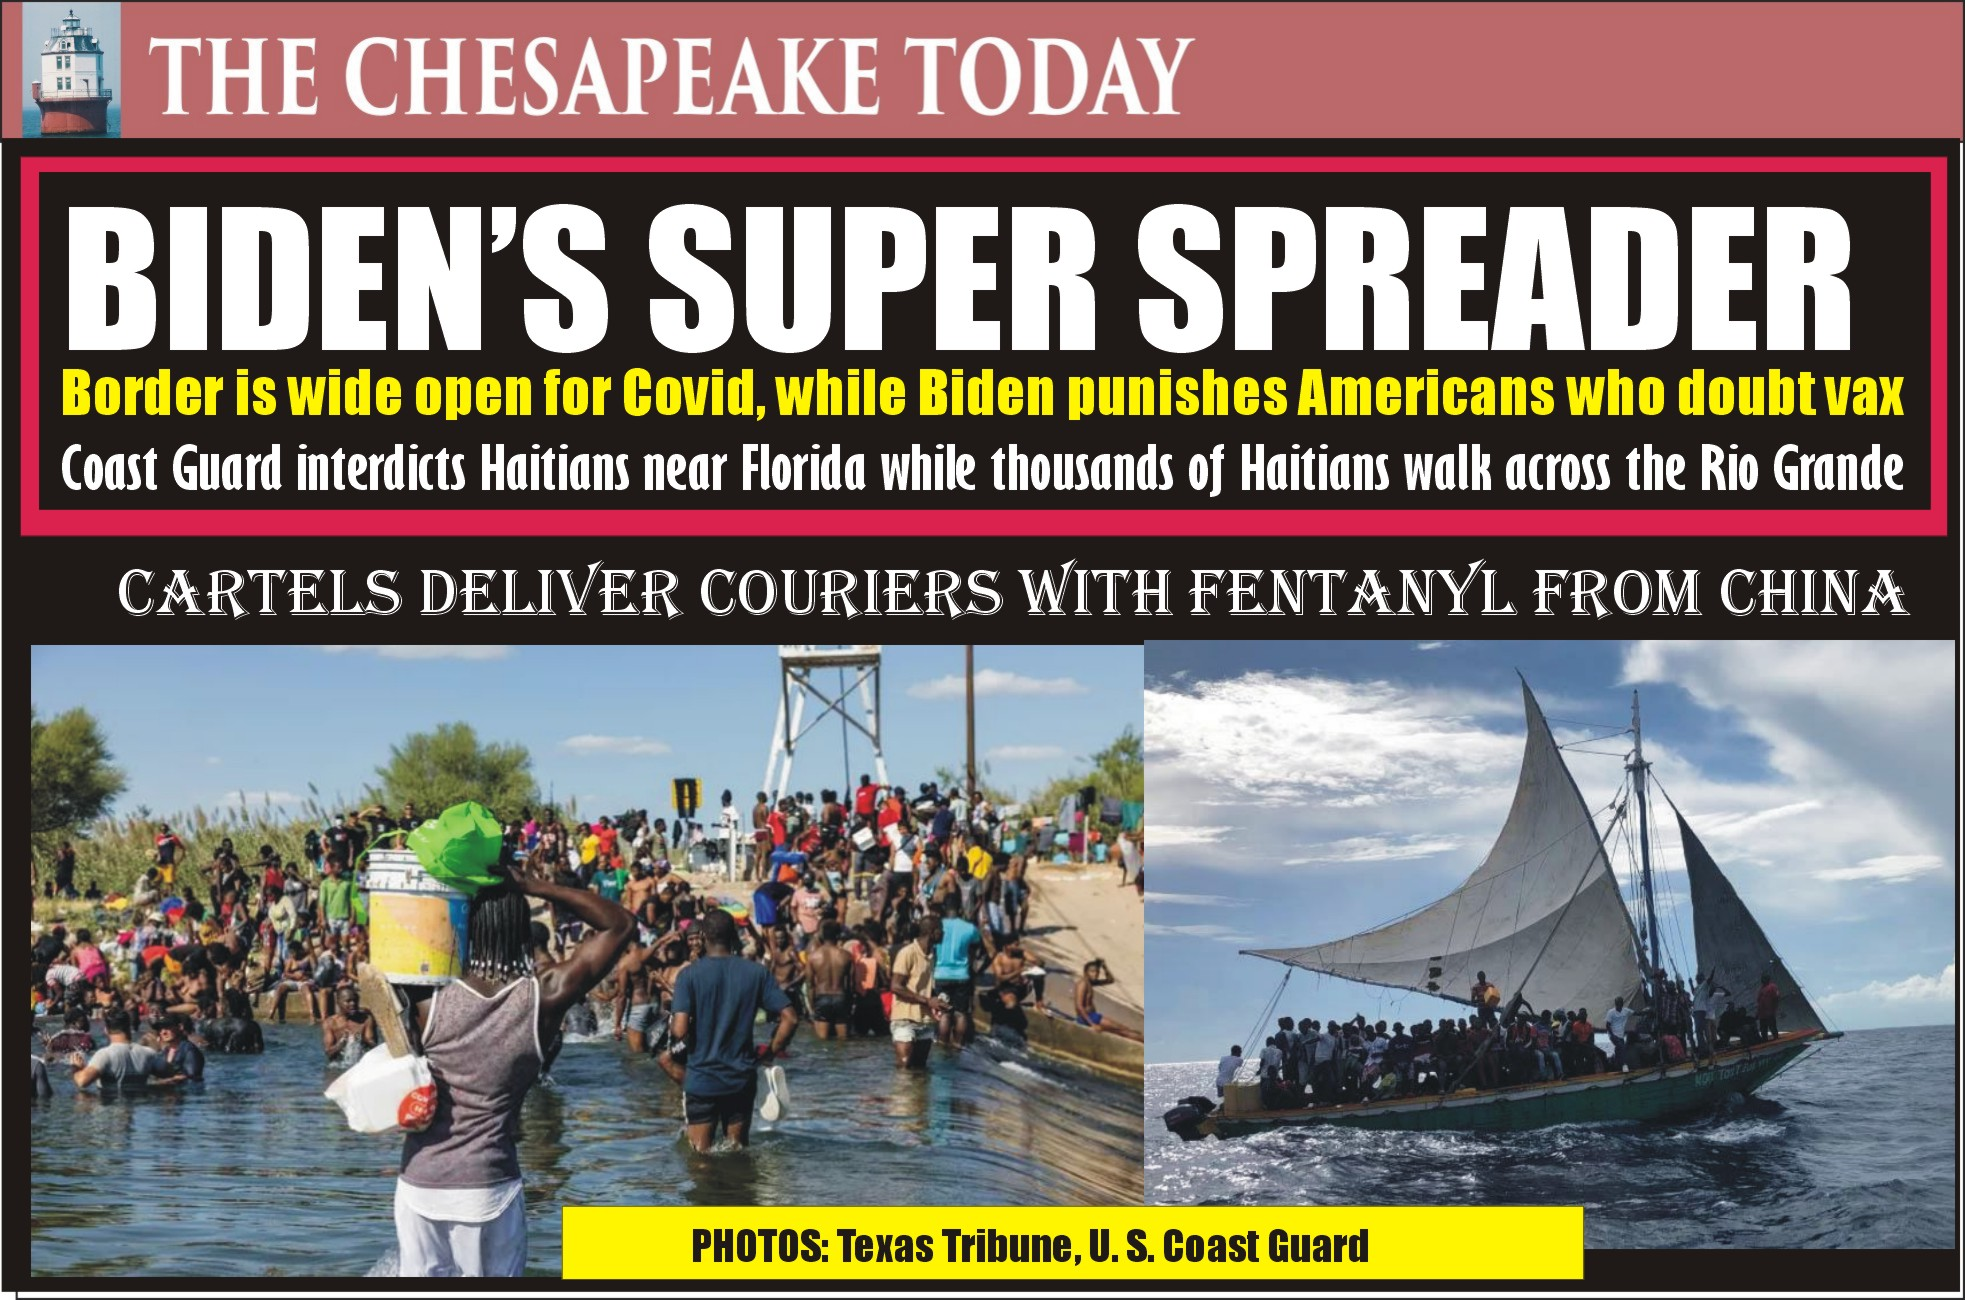 BIDEN'S SUPER SPREADER: Haitians being picked up in ocean transit by Coast Guard and returned to Haiti; while thousands of illegals are walking thru the Rio Grande at Del Rio, Texas bringing a fresh blue wave of Covid with no masks and no vaccine shots; 400 Border Patrol Agents Rushed to Texas